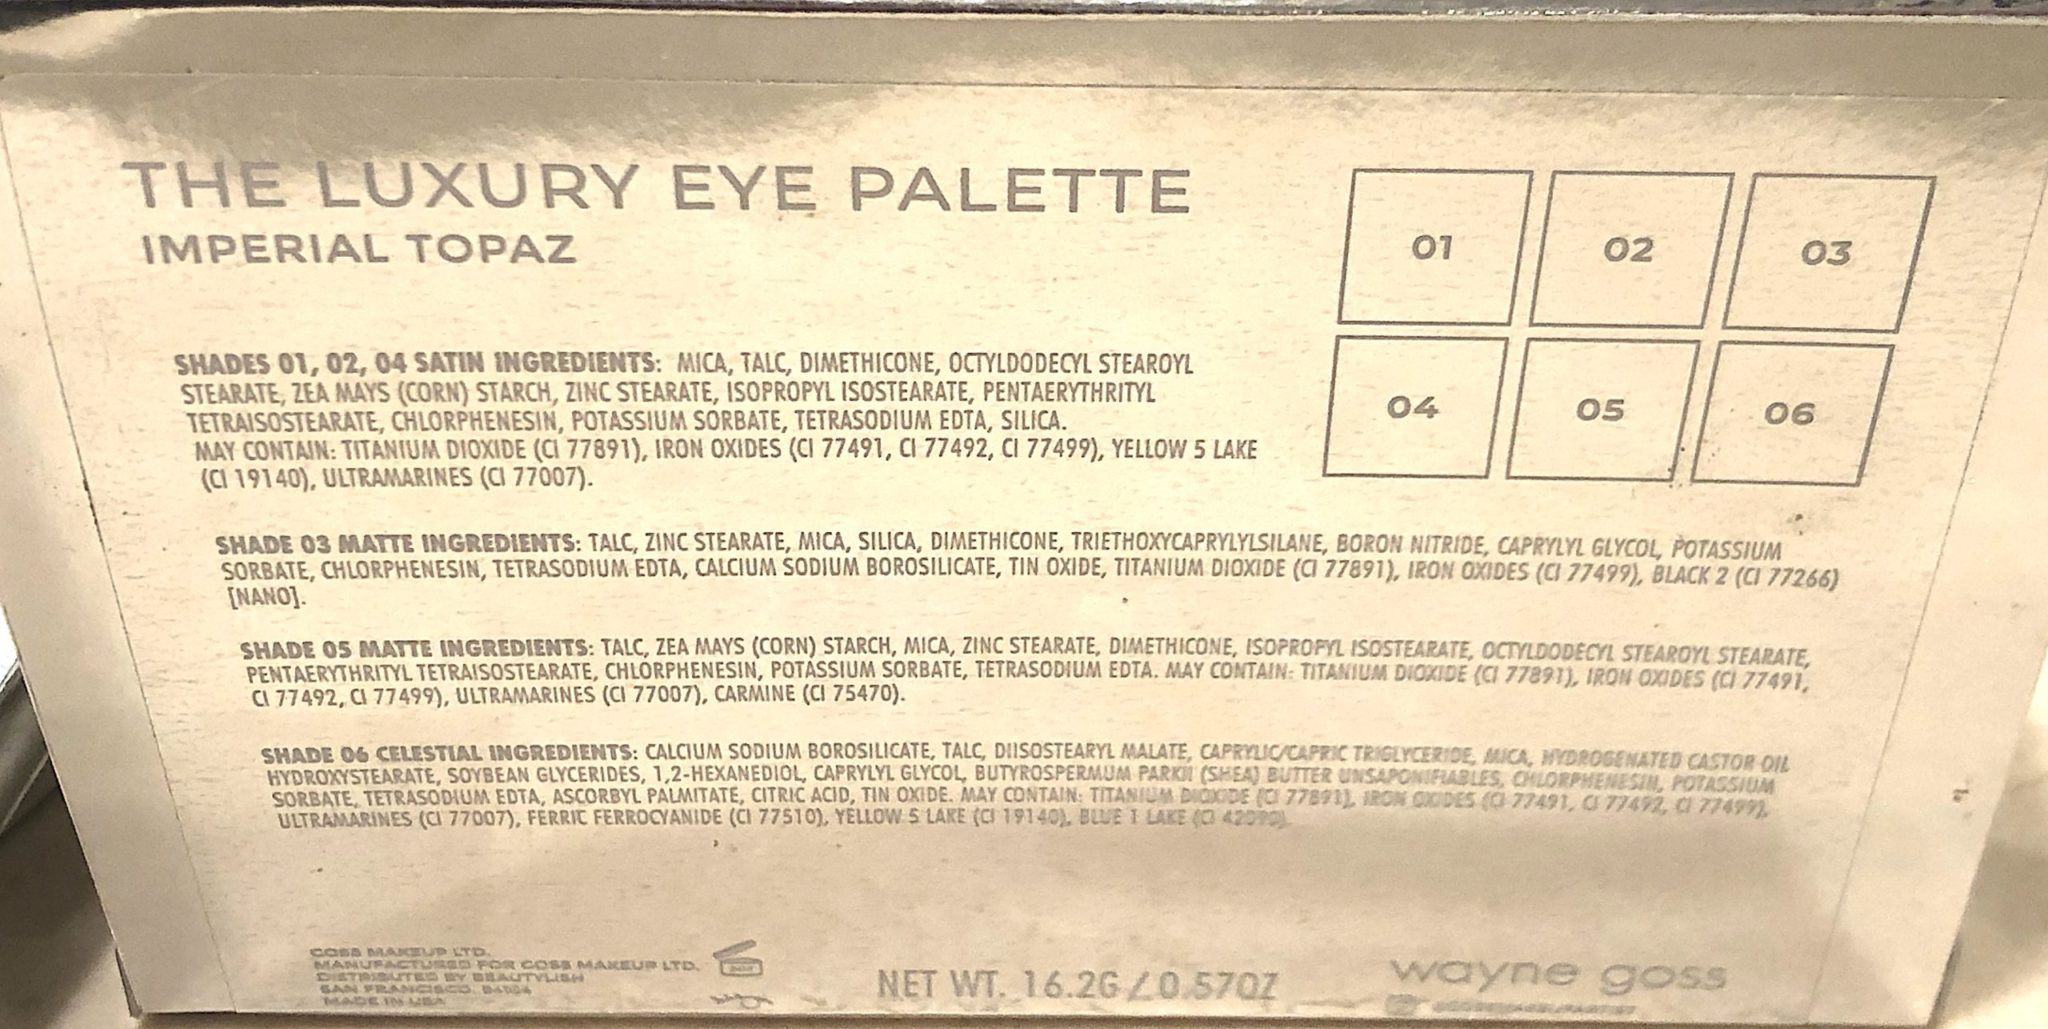 WAYNE GOSS IMPERIAL TOPAZ EYESHADOW PALETTE INGREDIENTS AND PLACEMENT OF THE SHADES IN THE PALETTE